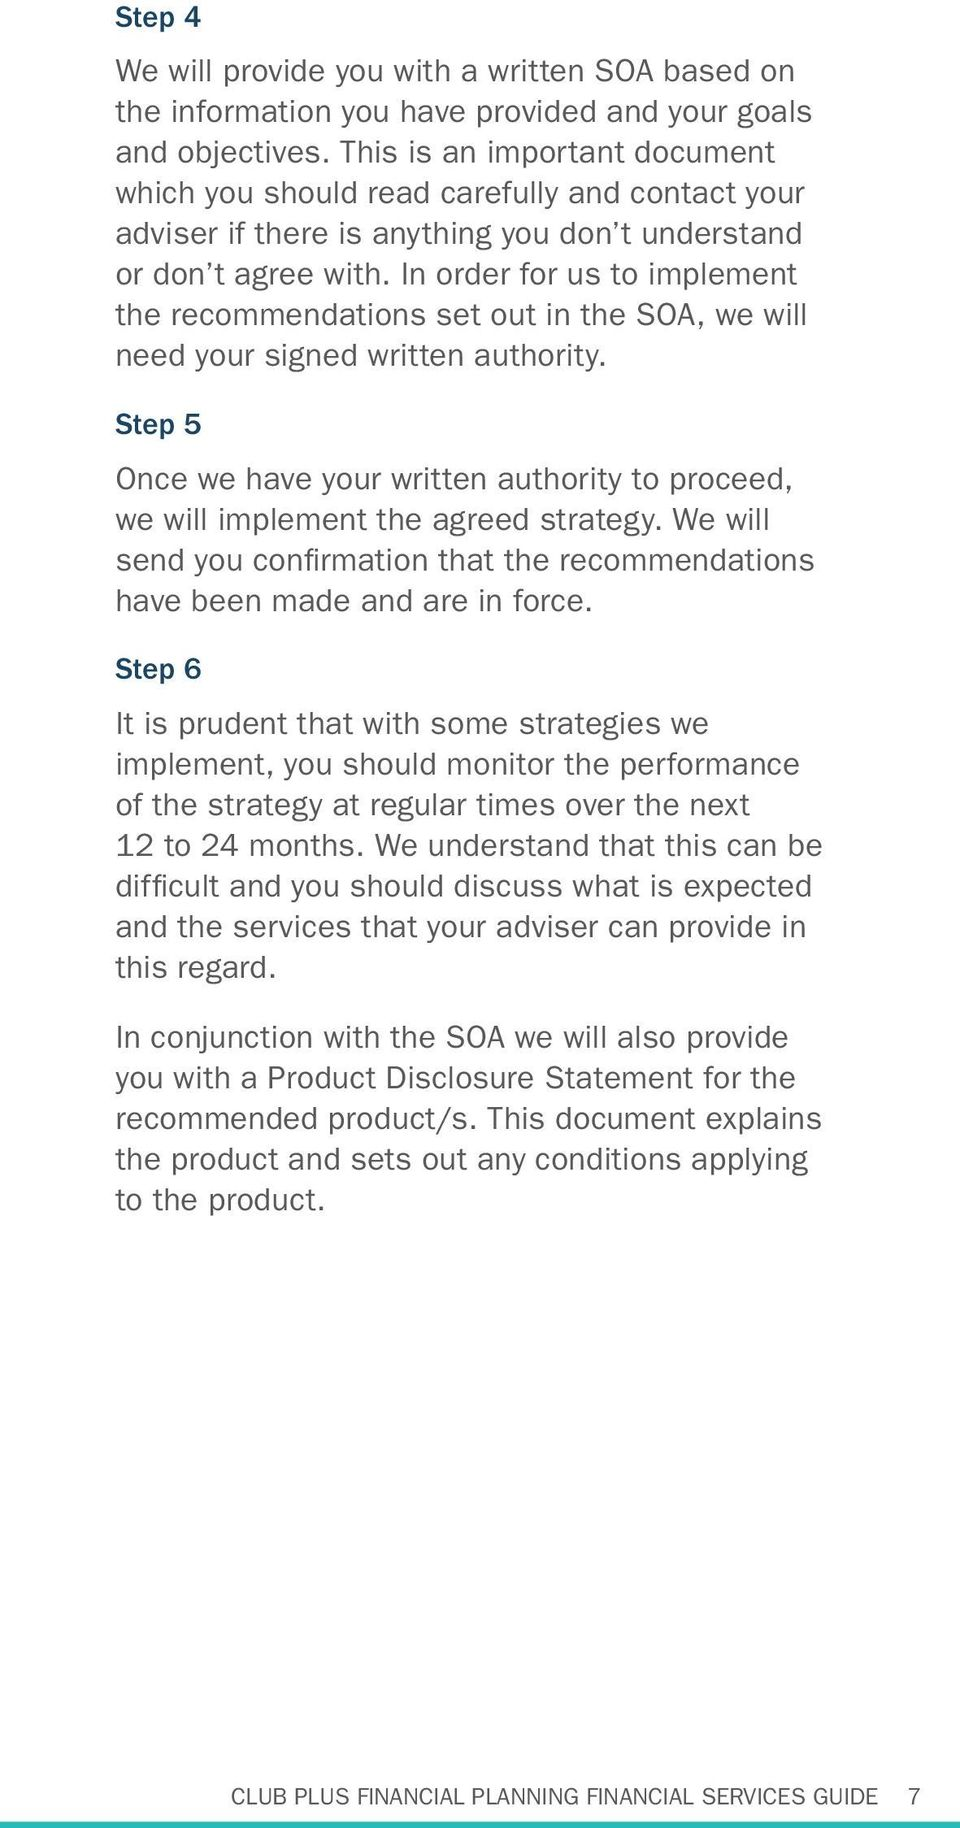 In order for us to implement the recommendations set out in the SOA, we will need your signed written authority.